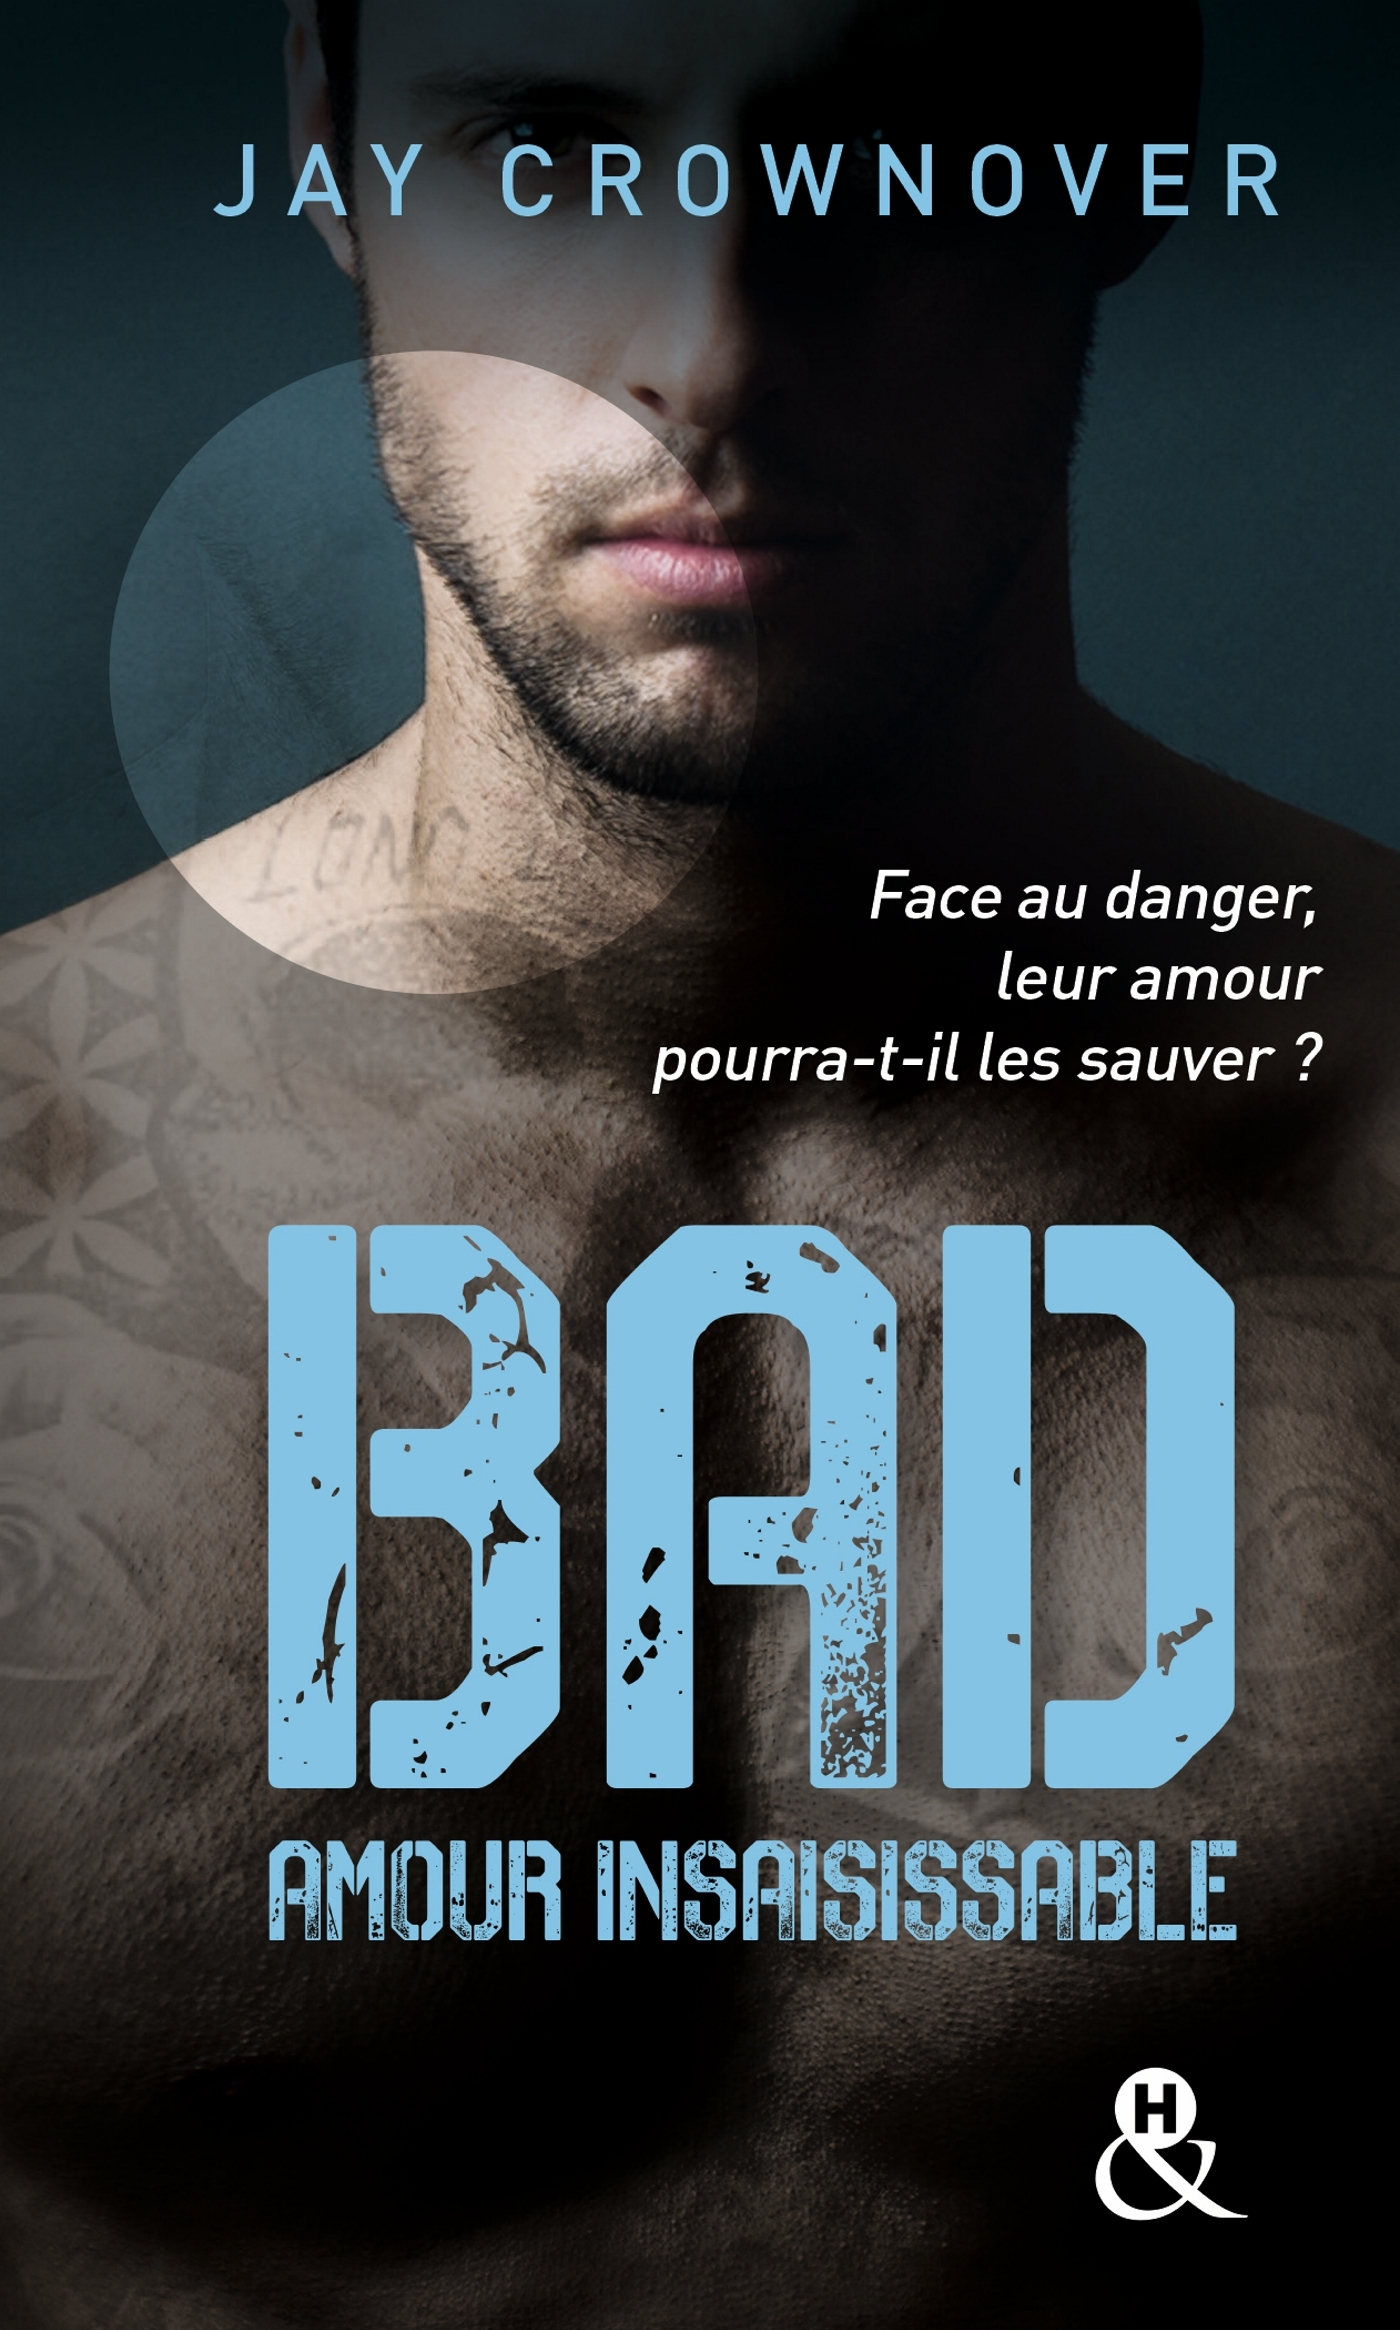 BAD - T5 AMOUR INSAISISSABLE - , LA SUITE DE LA SERIE NEW ADULT A SUCCES DE JAY CROWNOVER - DES BAD